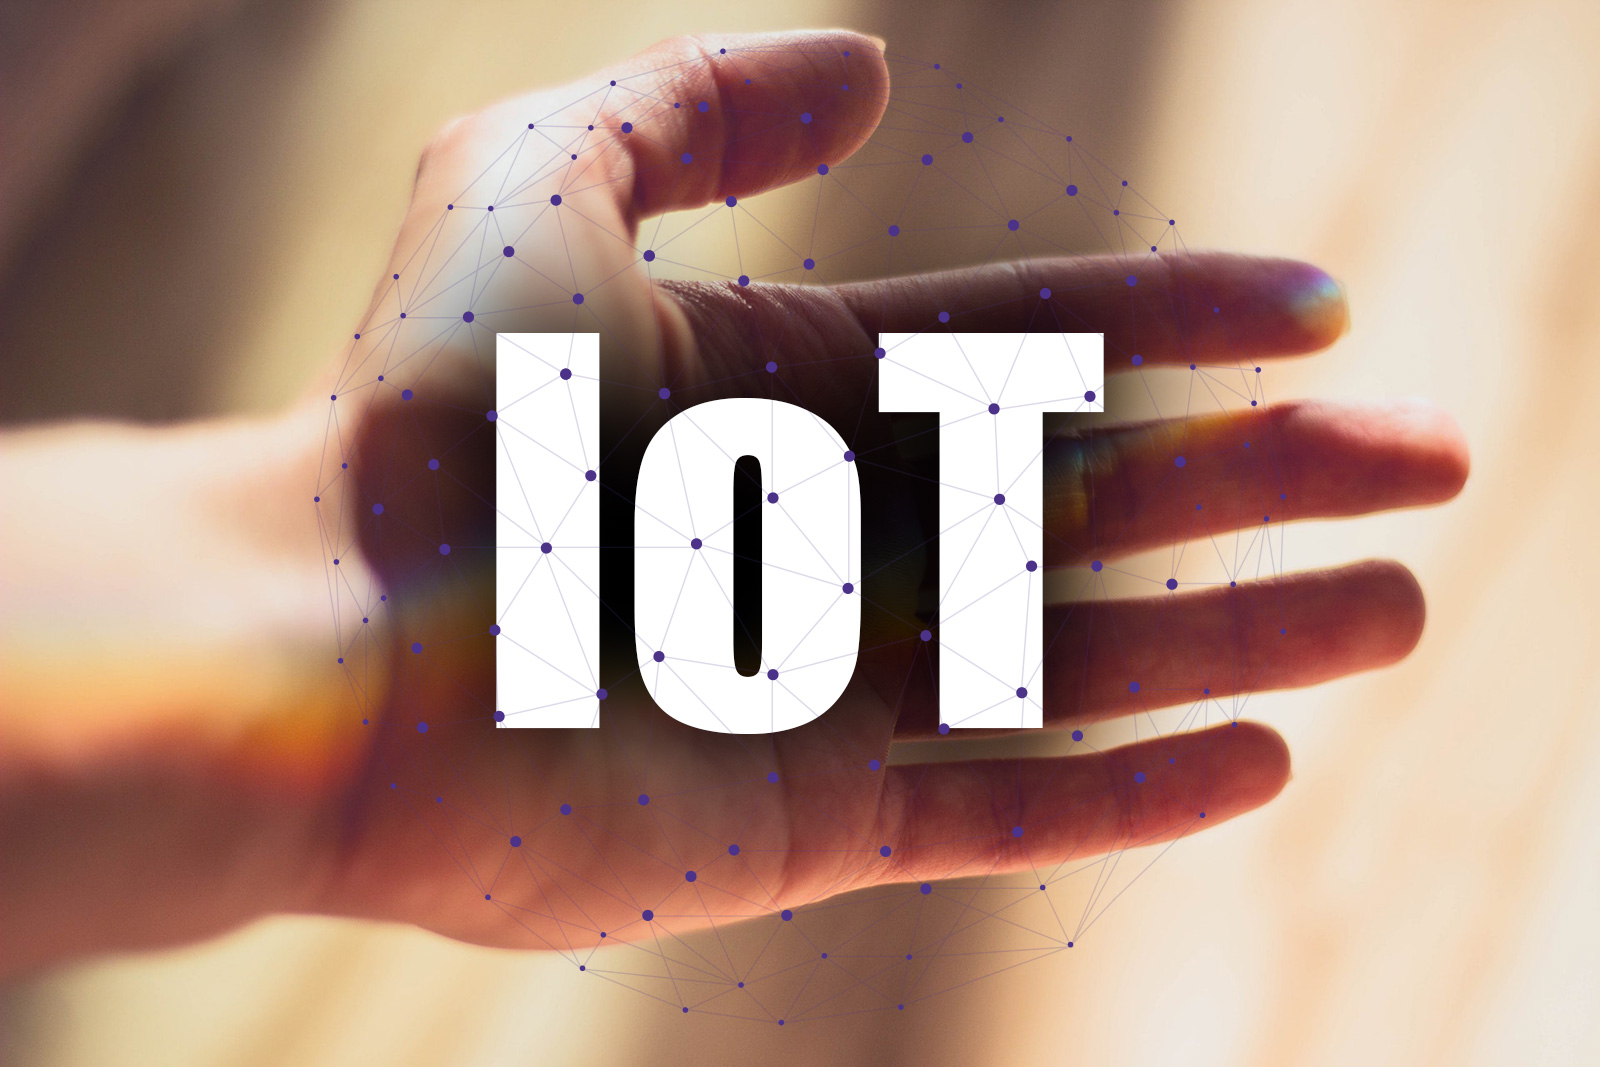 Preventing security issues from destroying the promise of IoT